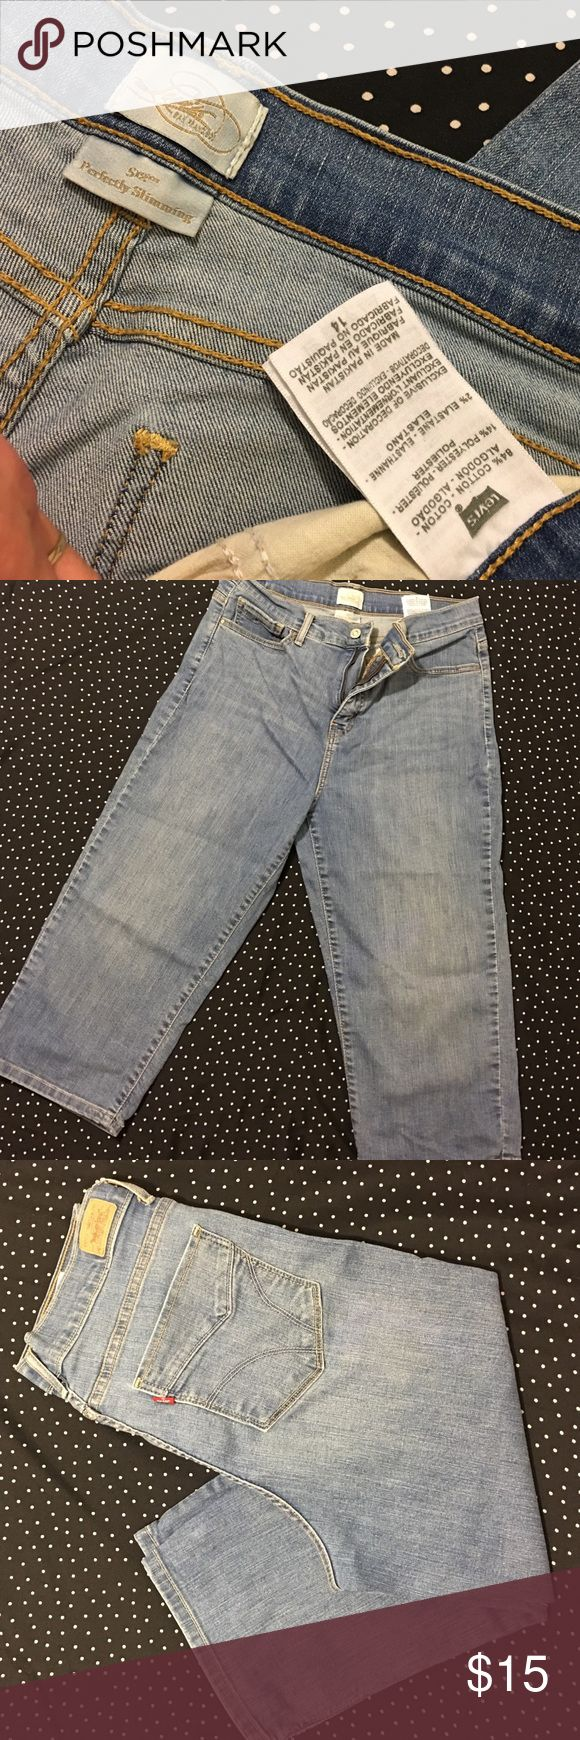 Levi's Perfectly Slimming Nickers These women's pair of Levi's jeans hold a figure-enhancing secret: A tummy slimming panel through our innovative pocket design that creates an all over smooth shape, with super-stretchy denim that ensures all-day comfort. Used condition size 14 Levi's Jeans